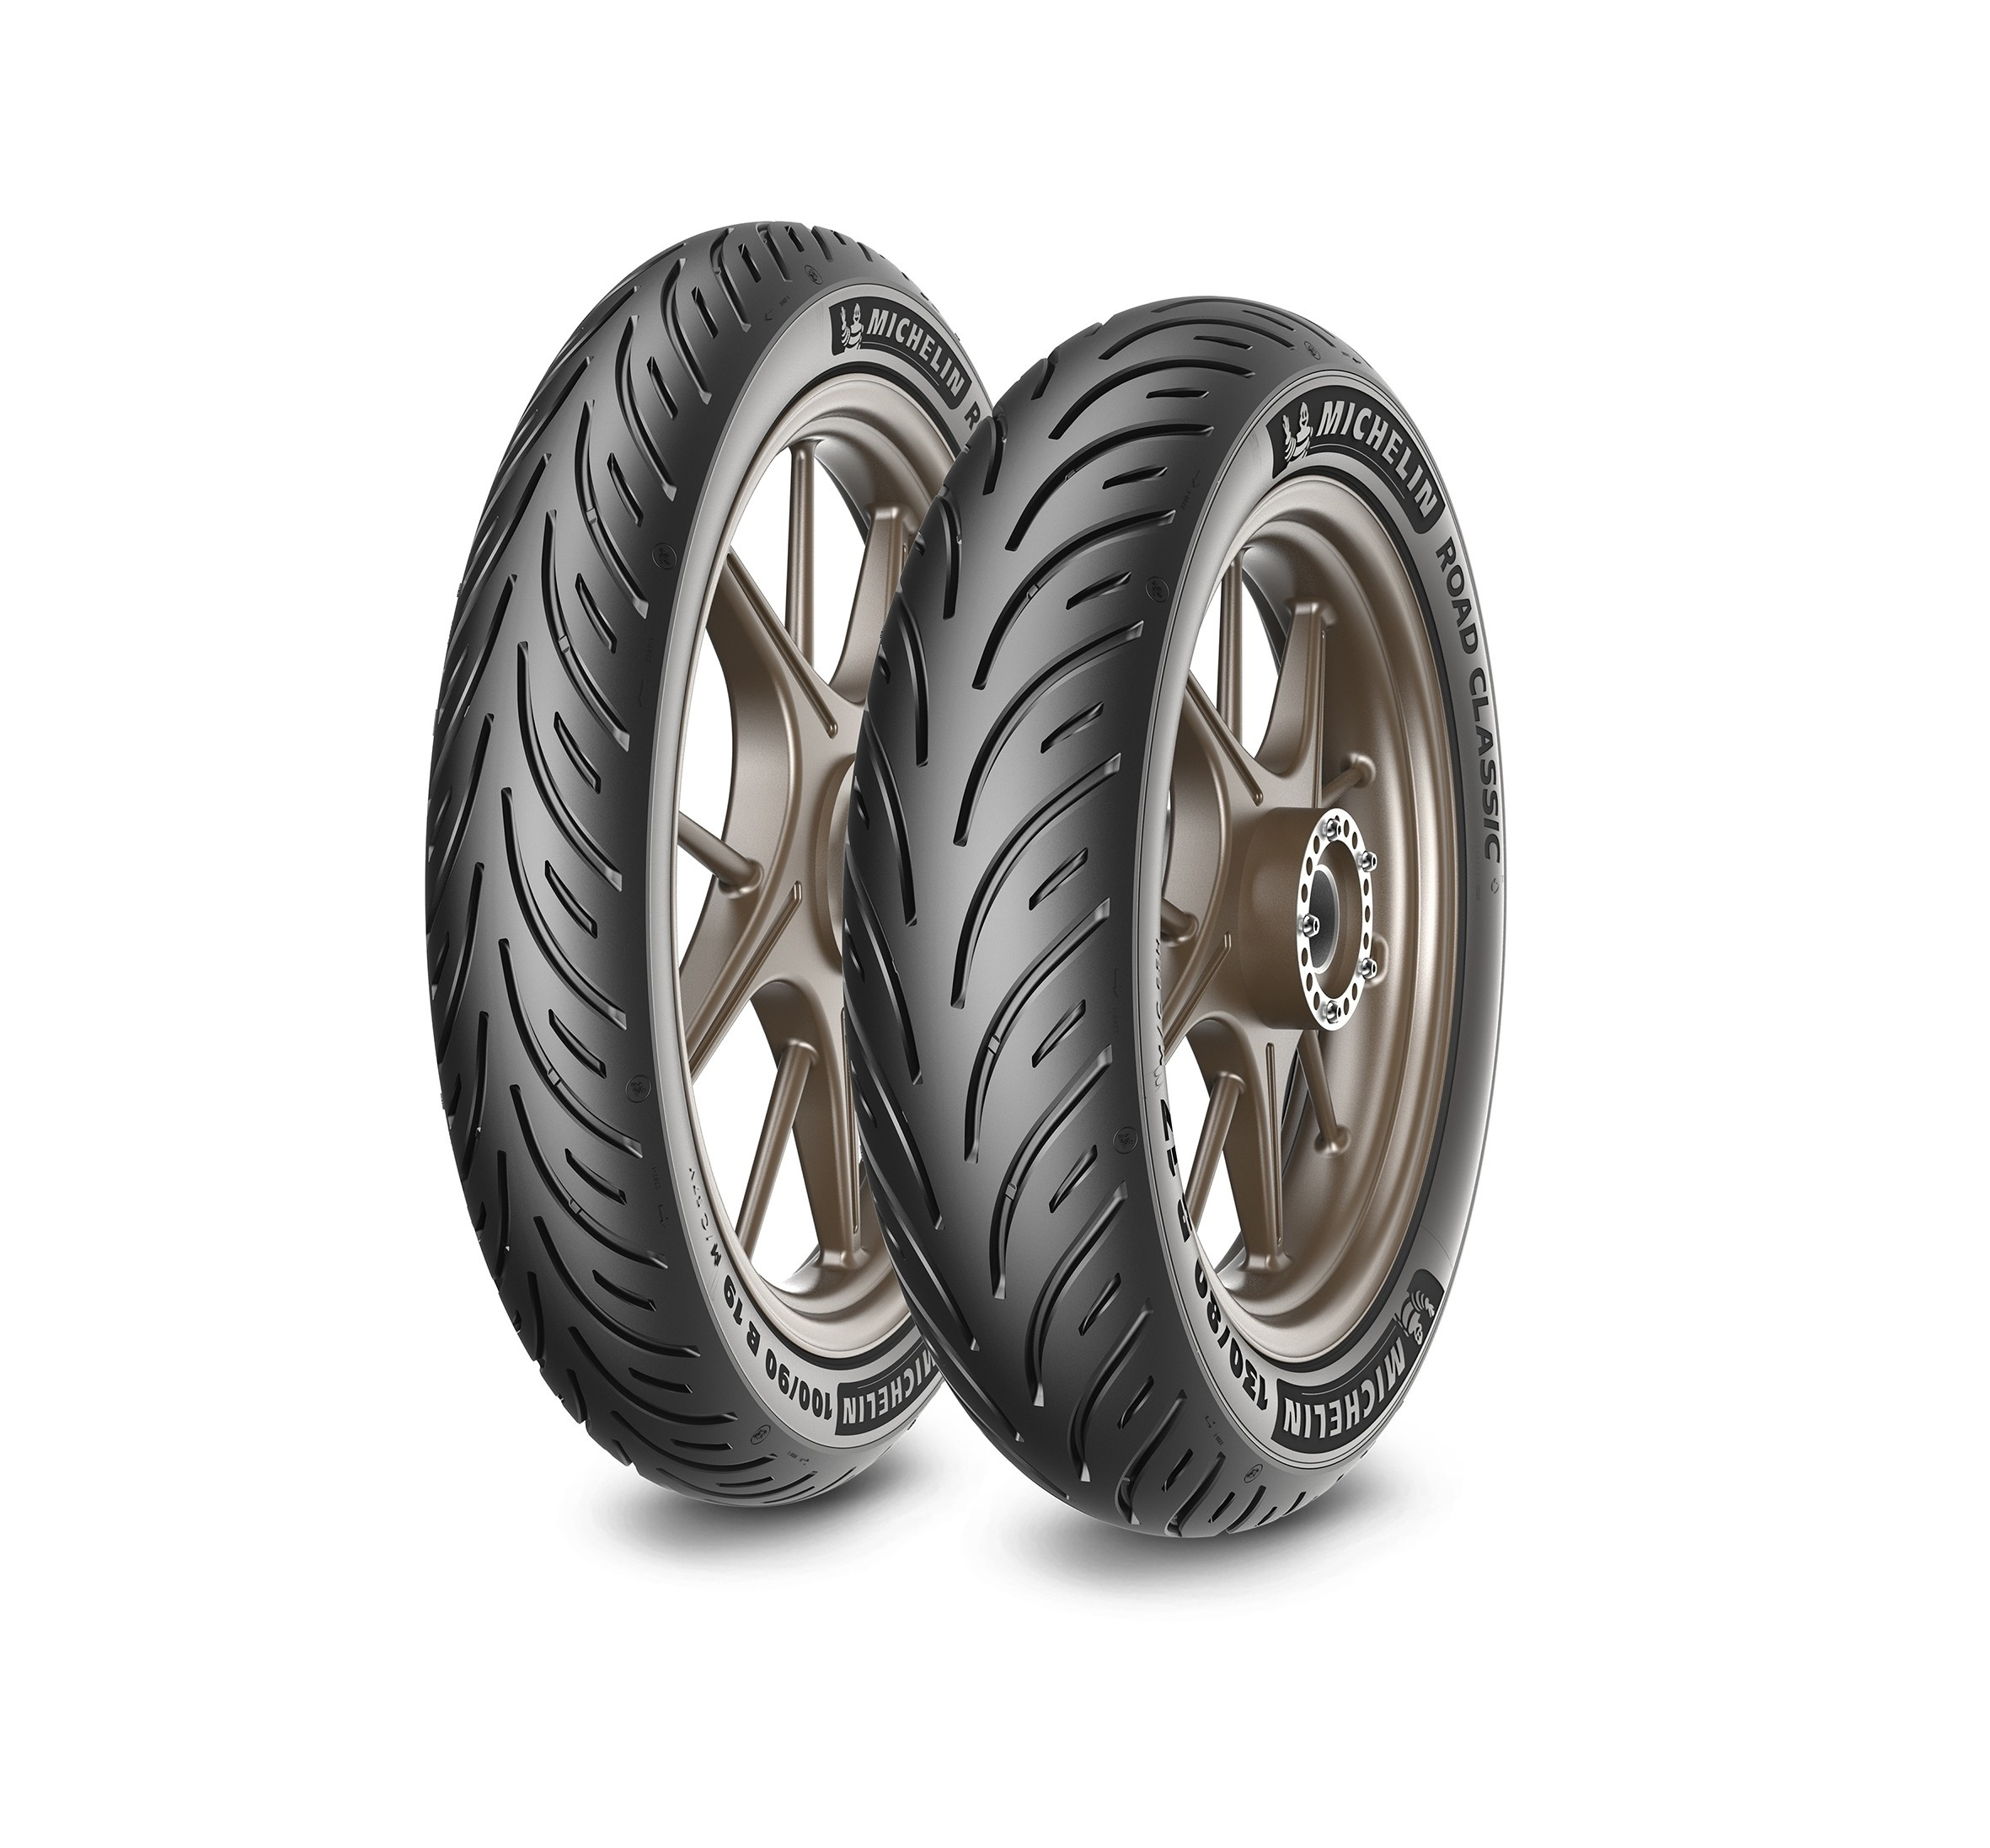 150/70-17 B 69H, MICHELIN Road Classic, TL/TT